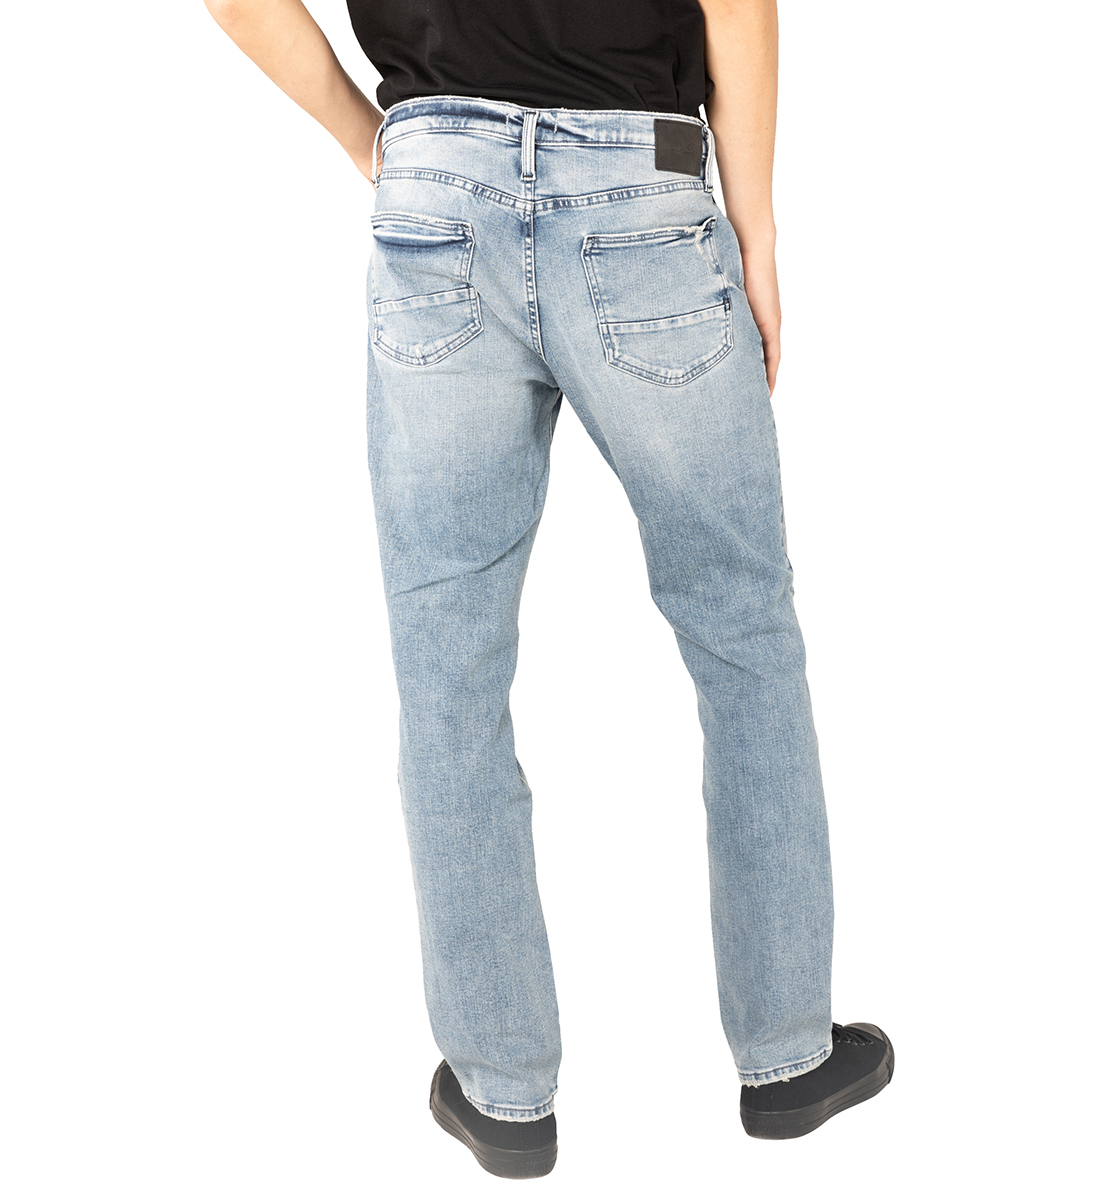 Machray Classic Fit Straight Leg Jeans Back